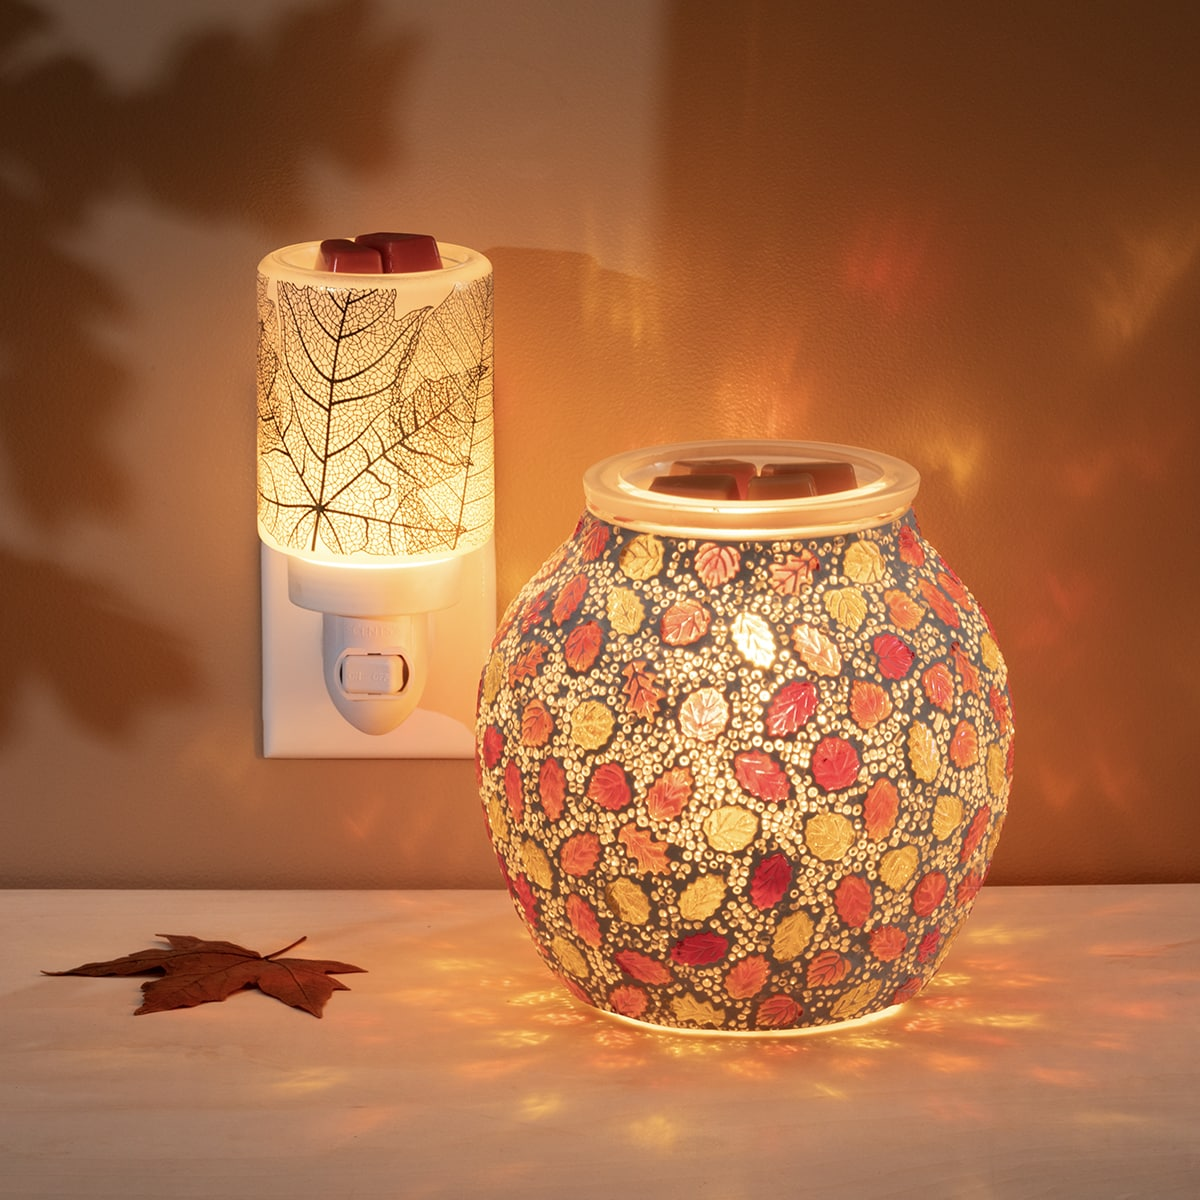 Forever Fall Gilded Leaves Mini Scentsy Warmer   NEW! Forever Fall Scentsy Warmer   Incandescent.Scentsy.us